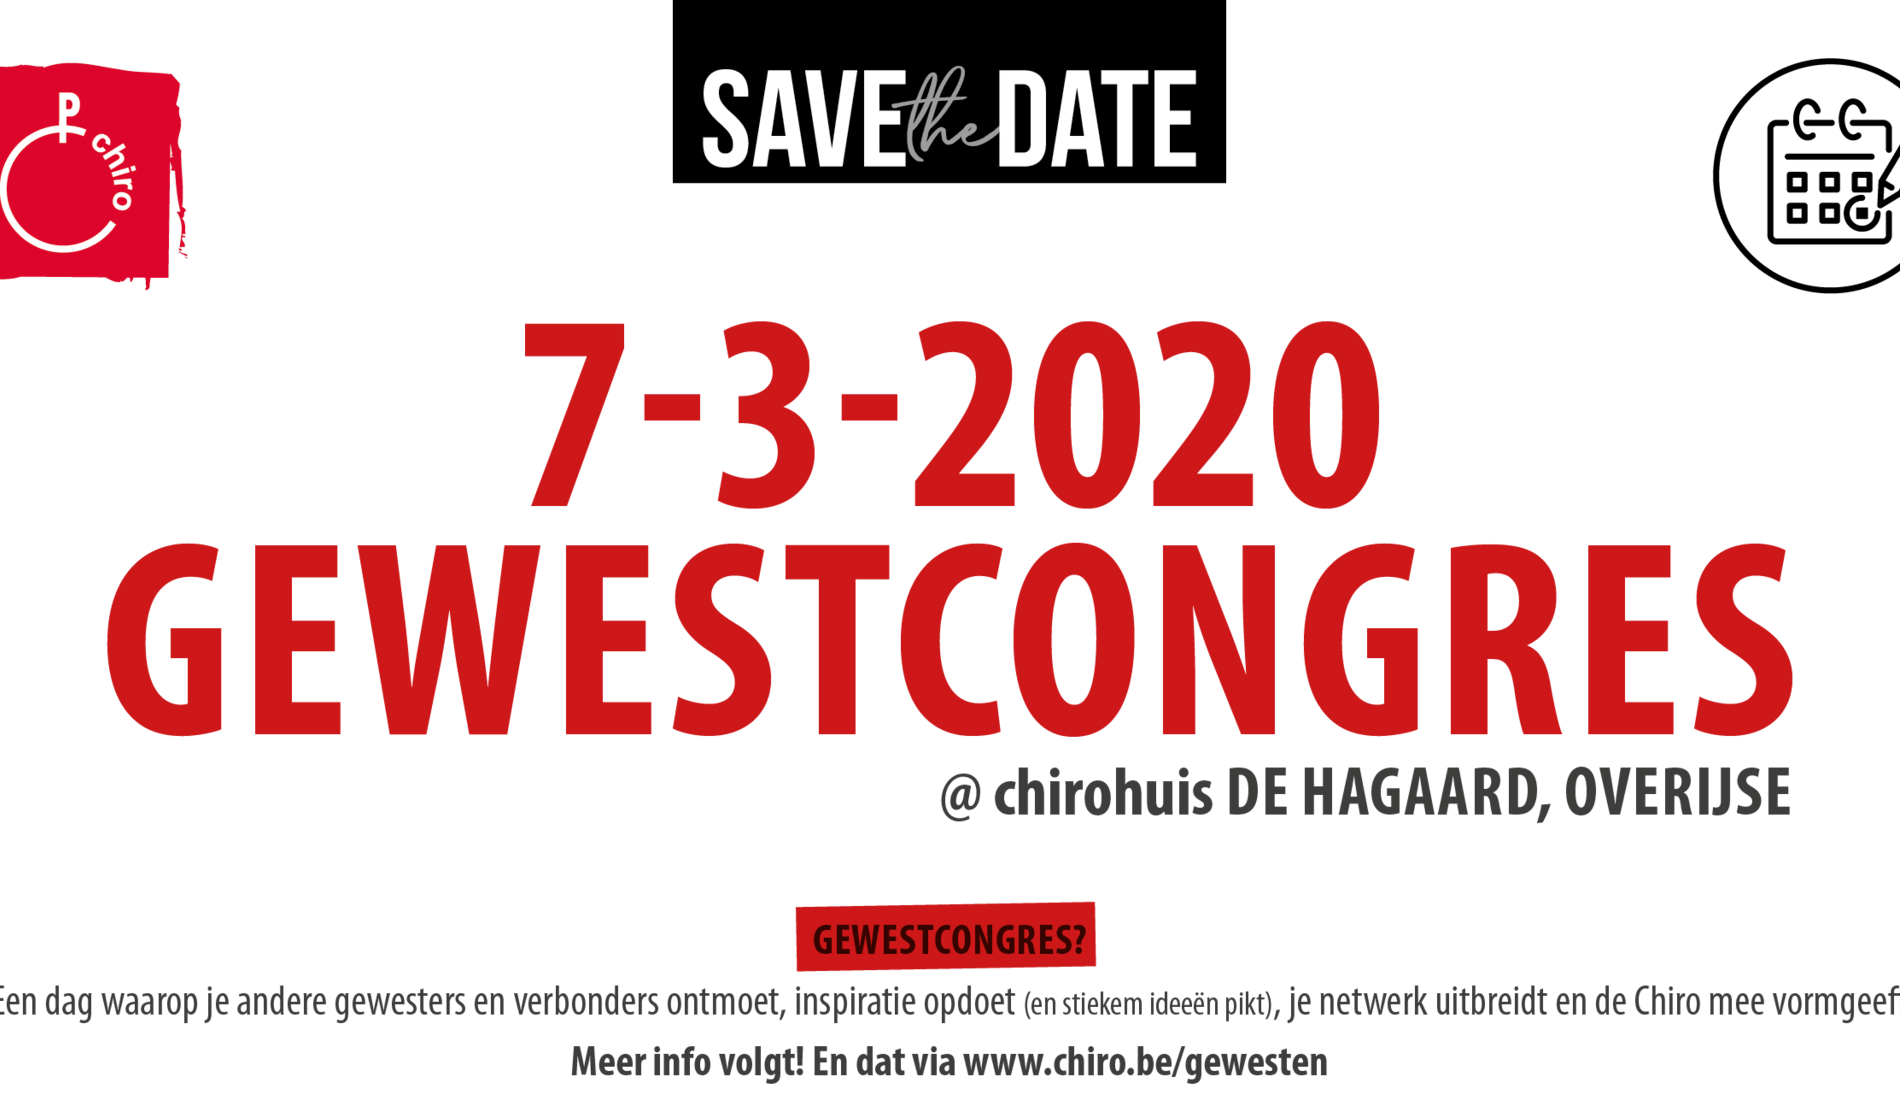 Save the date gewestcongres